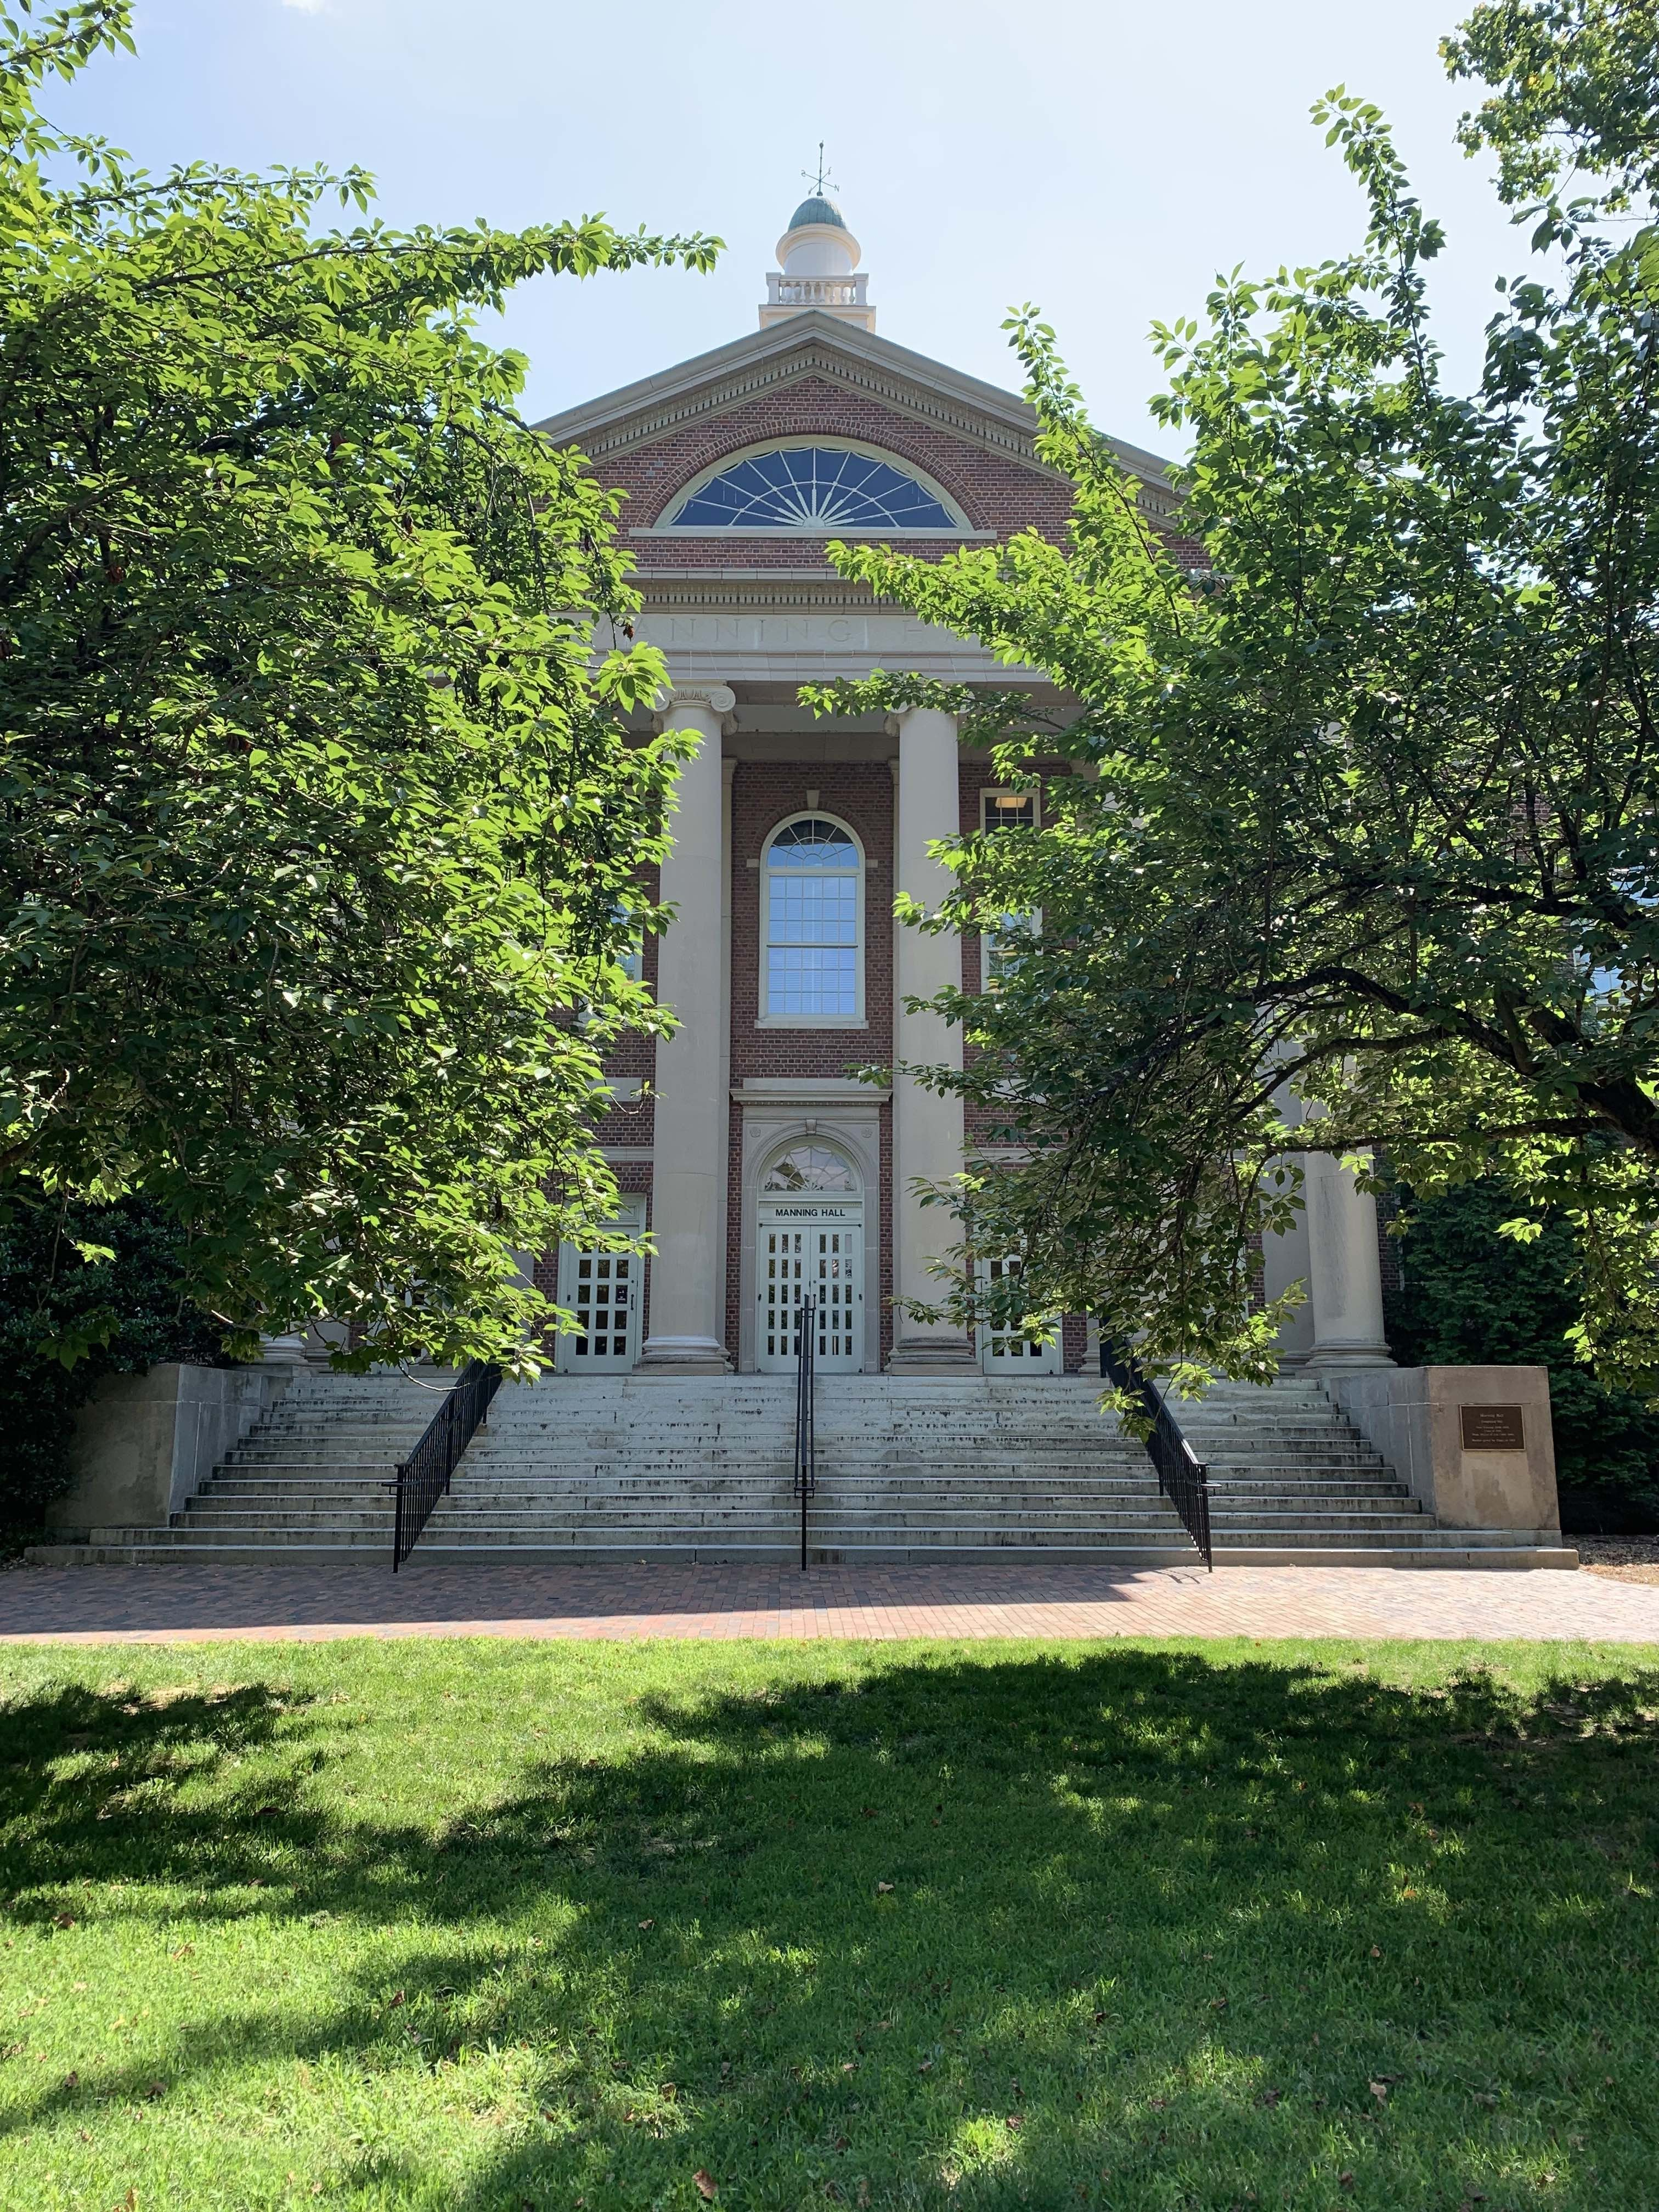 The front view of Manning Hall from the quad between Carolina and Murphy Halls.